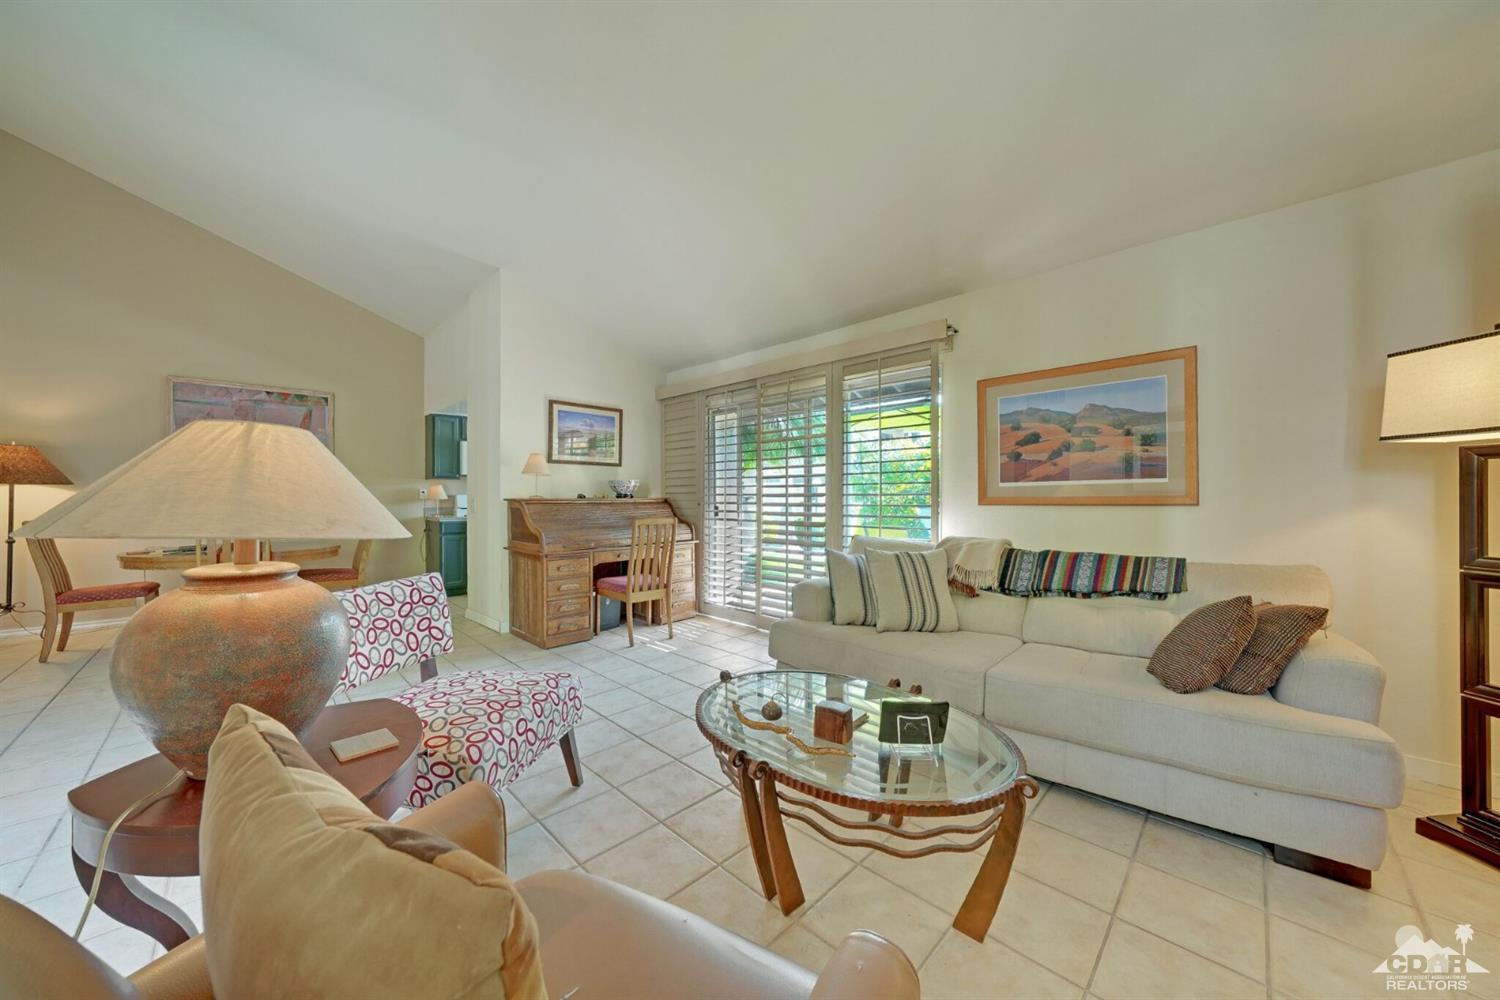 1478 S Camino Real, Palm Springs, California 92264, 1 Bedroom Bedrooms, ,1 BathroomBathrooms,Residential,Sold,1478 S Camino Real,219014361